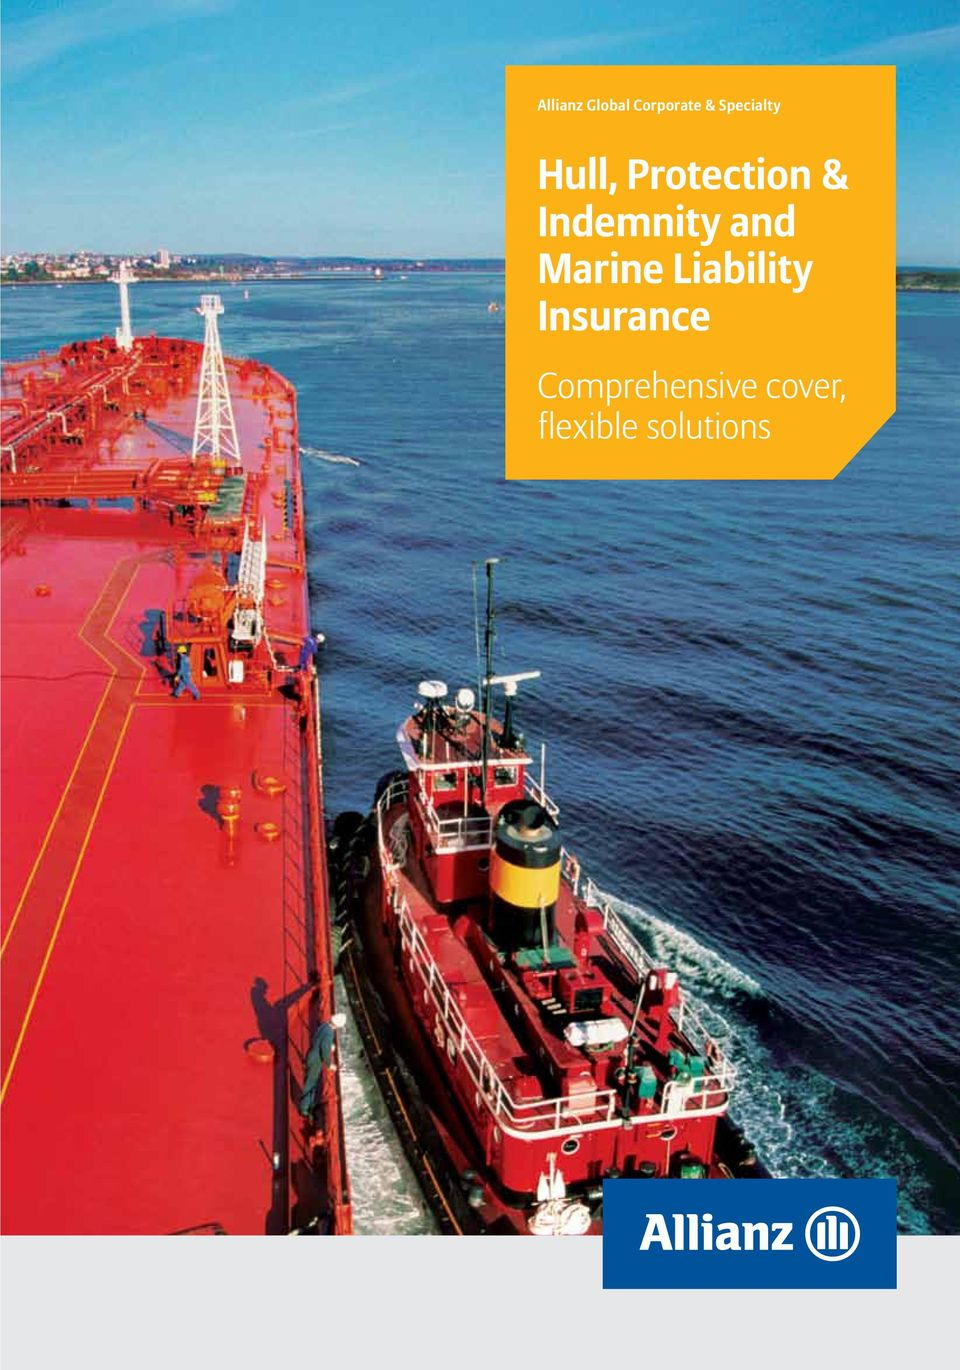 Indemnity and Marine Liability